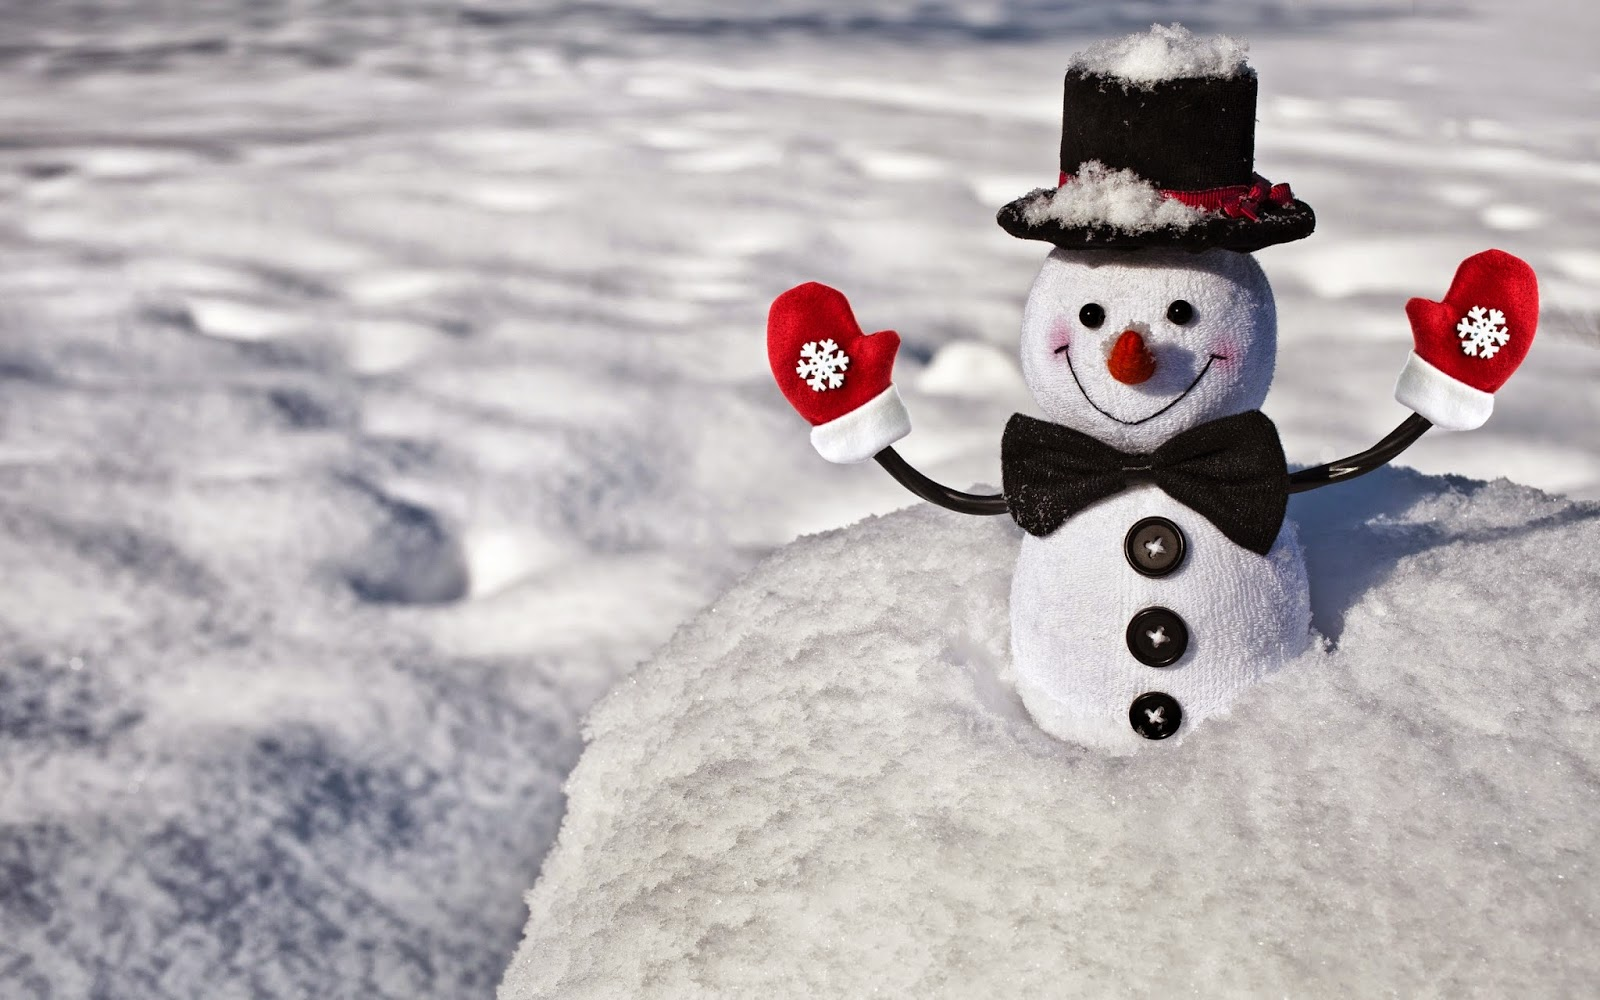 Little-snowman-with-hat-in-snow-playing-happy-smile-image.jpg